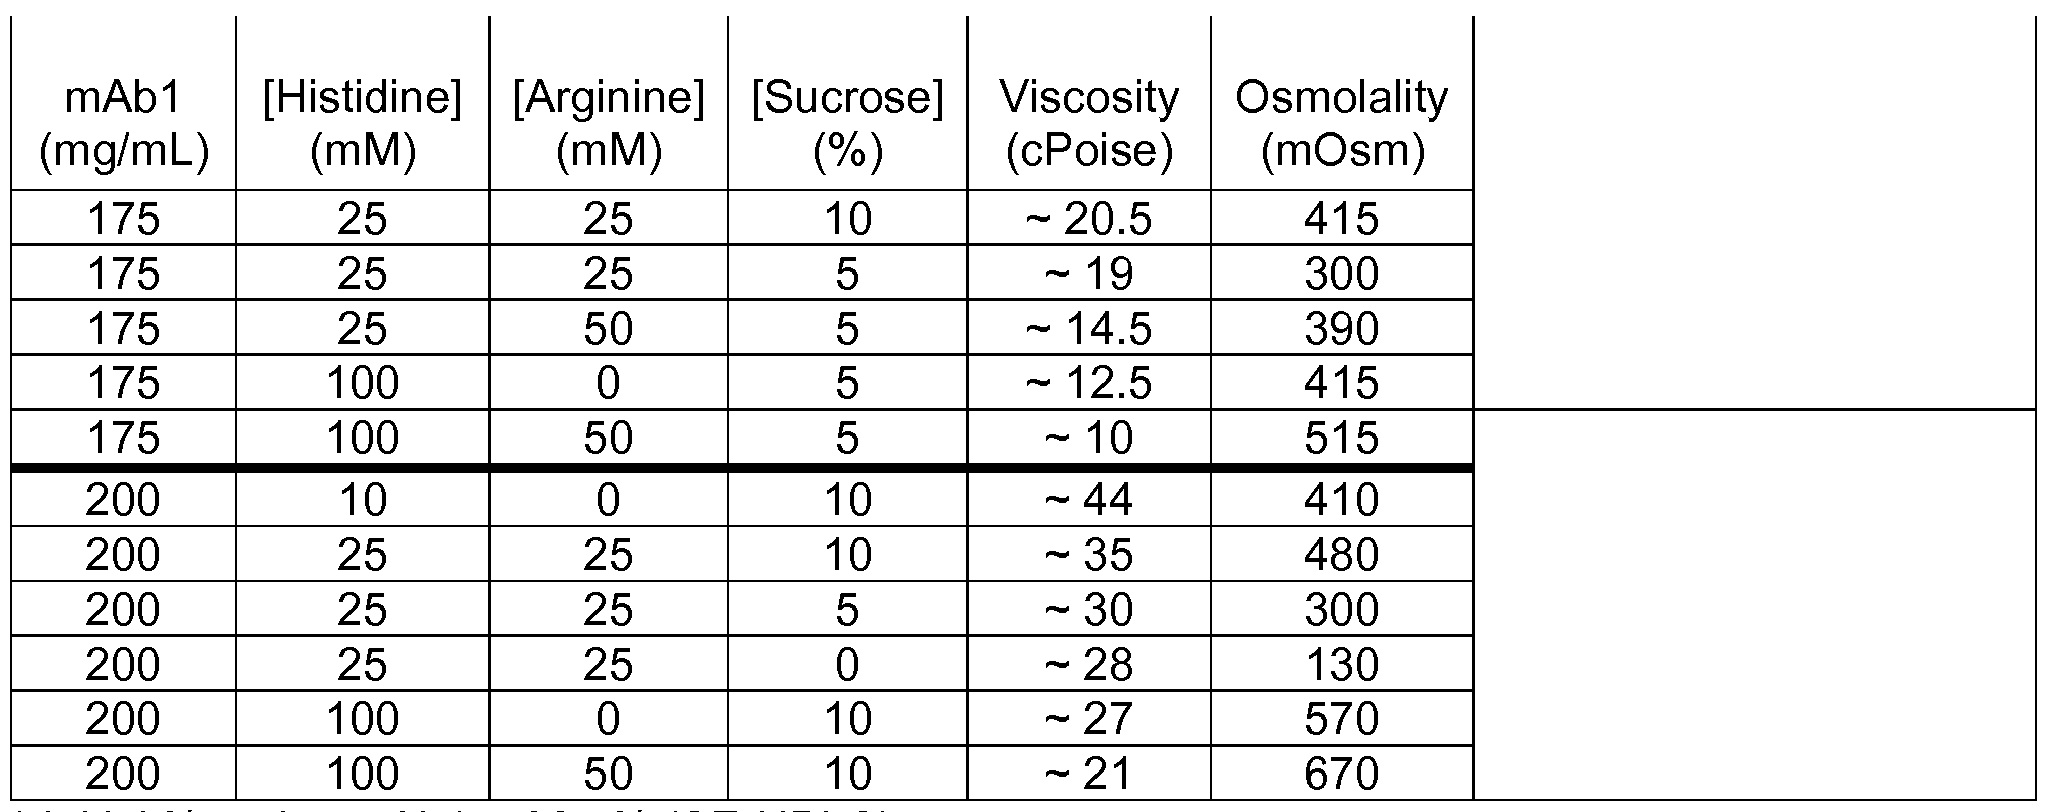 Novolog Sliding Scale Insulin Chart